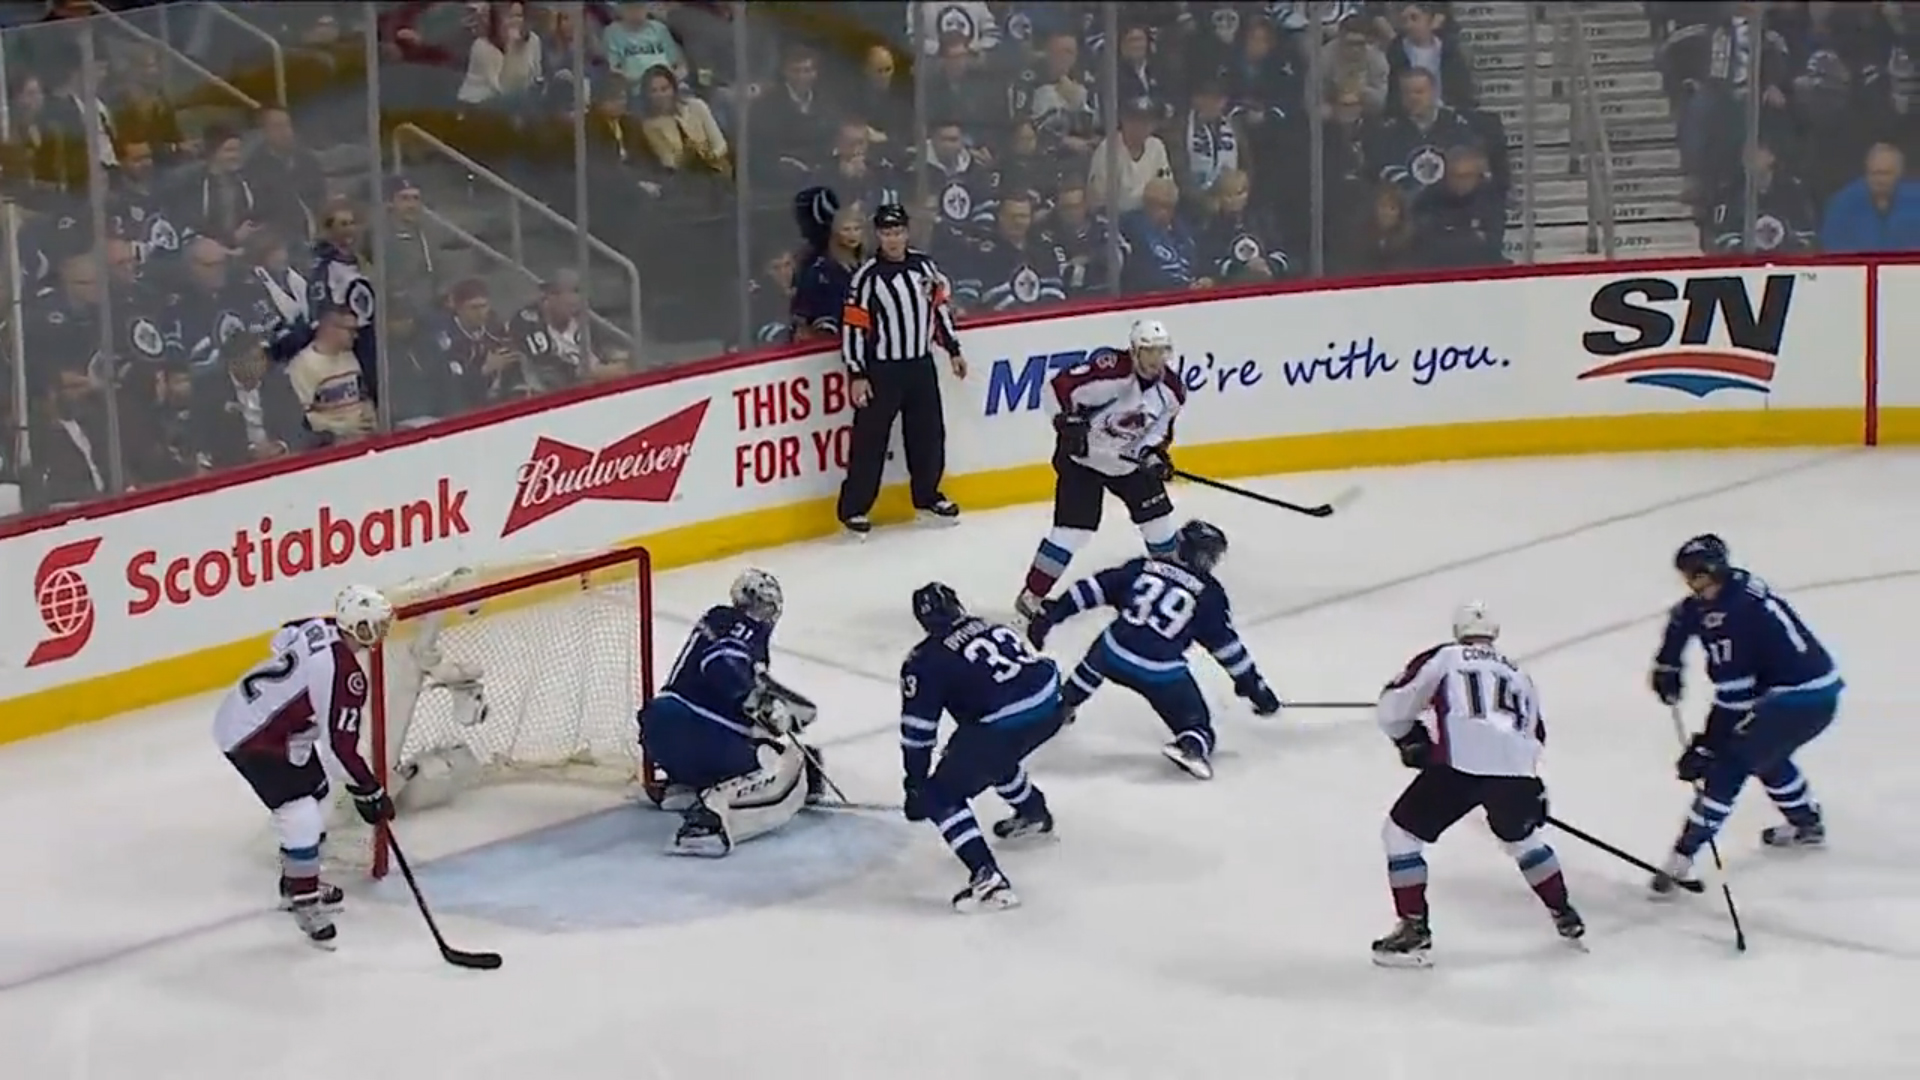 Patrick-Roy-Show-24-Top-Plays.jpg